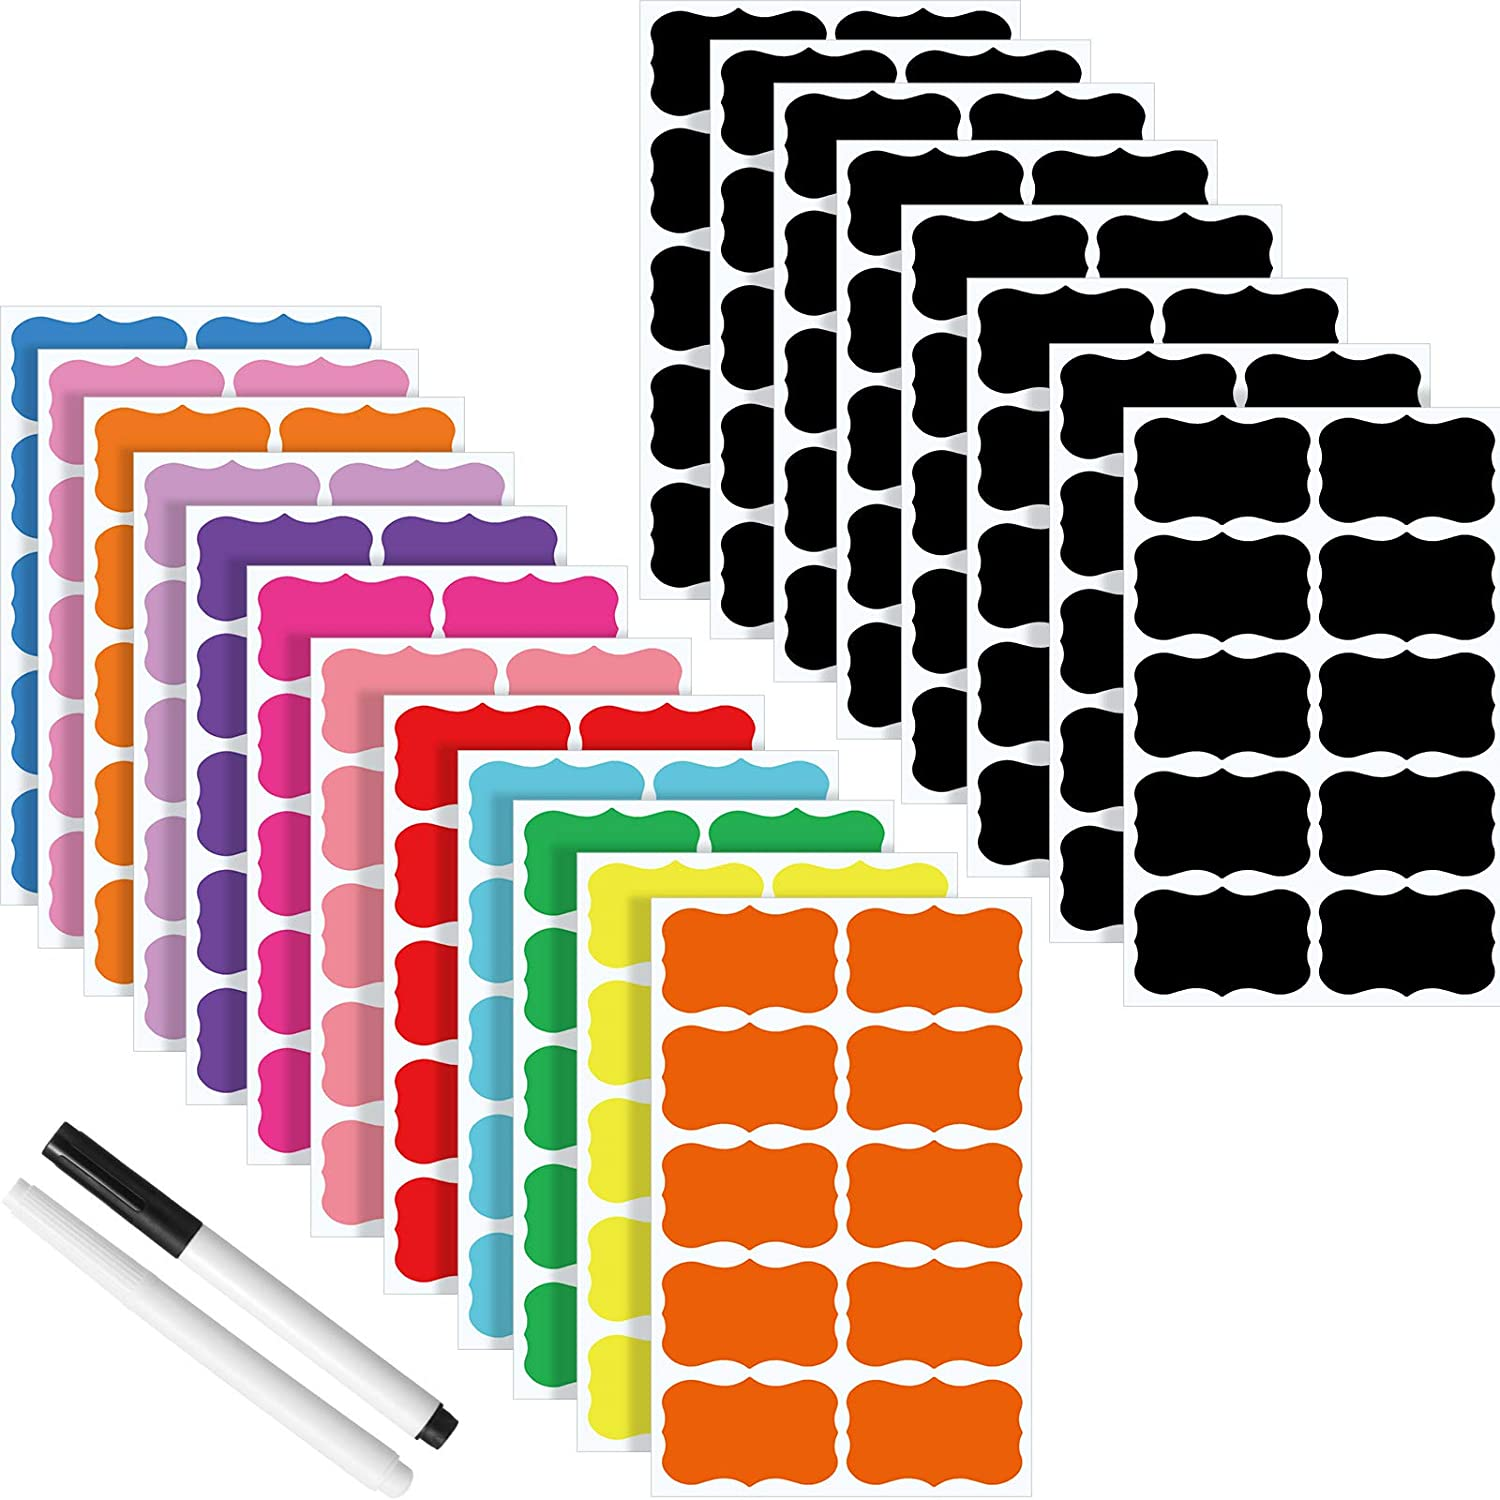 160 Pieces 13 Colors Chalkboard Labels Reusable Blackboard Stickers Colored Chalk Board Jar Labels with 2 Erasable Chalk Pen for Decorating Parties, Craft Rooms, Weddings, Store and Kitchen